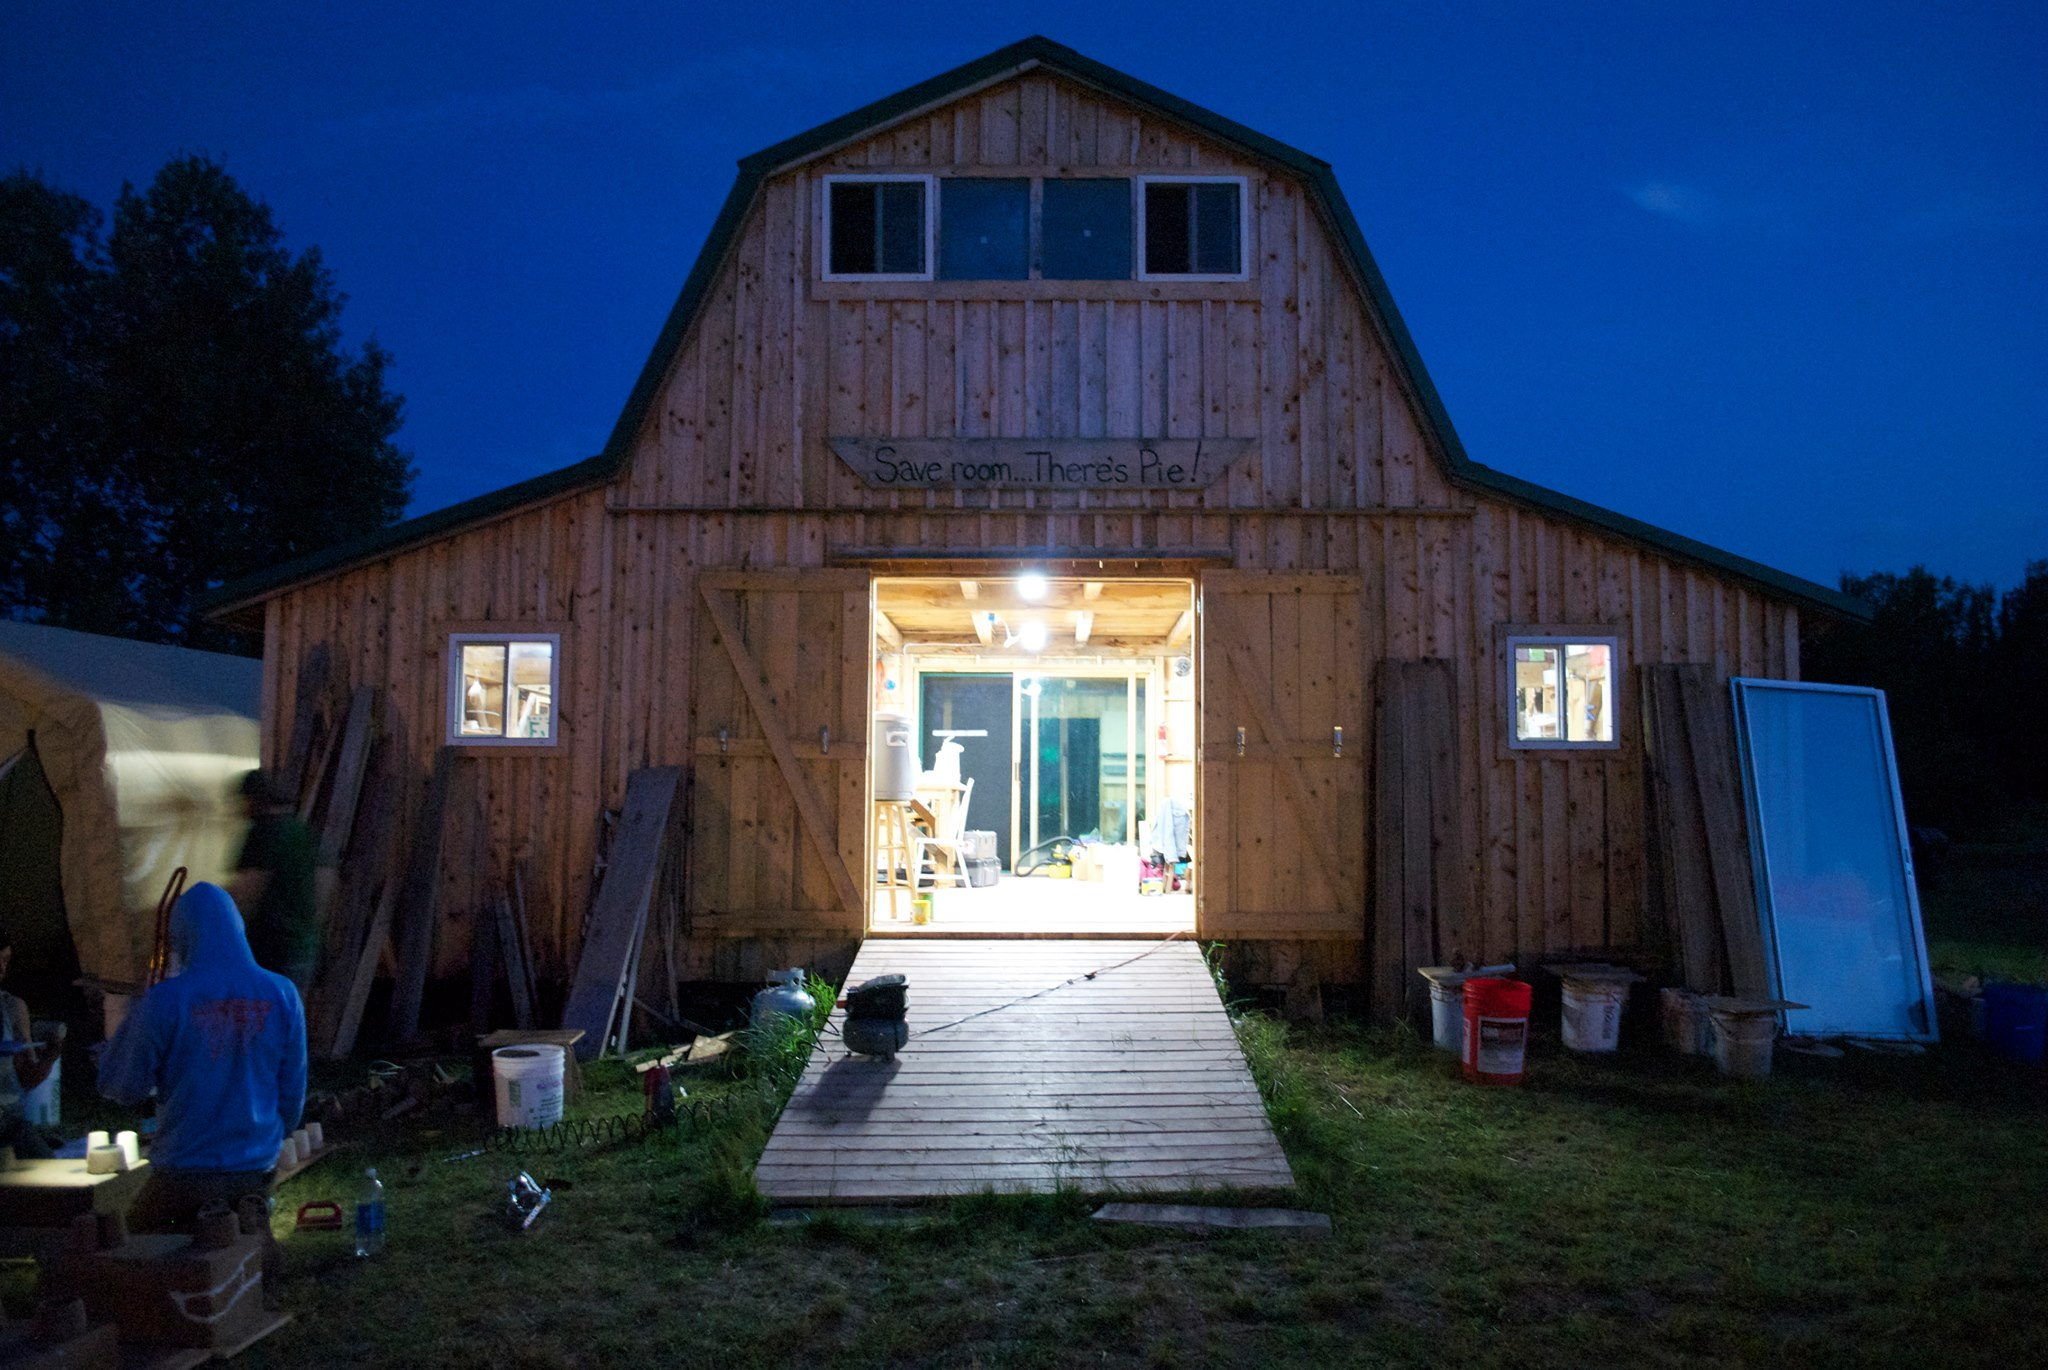 We adore the Seeger Studio Barn!